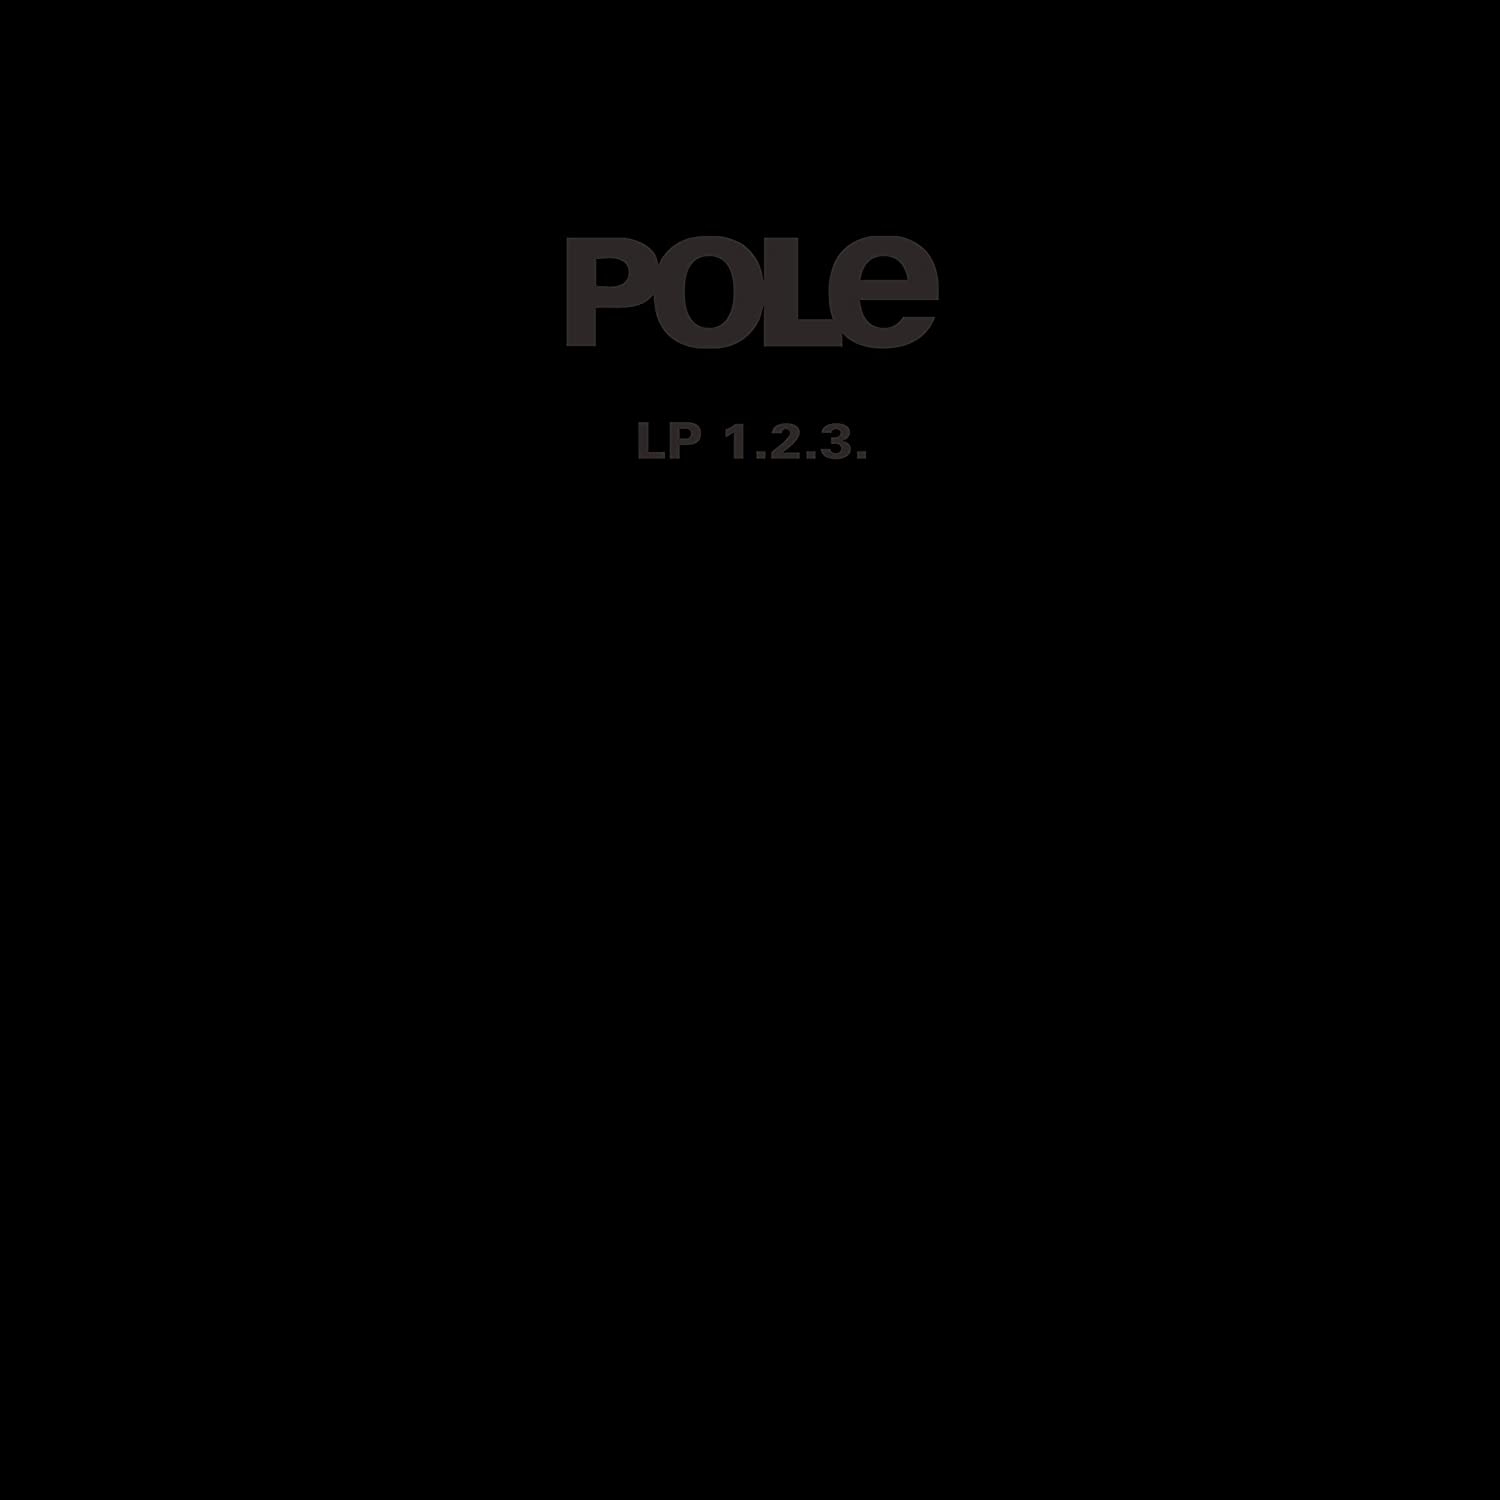 POLE - 123 [7LP Box] (Colored Vinyl, limited to 1000) - Urban Vinyl | Records, Headphones, and more.